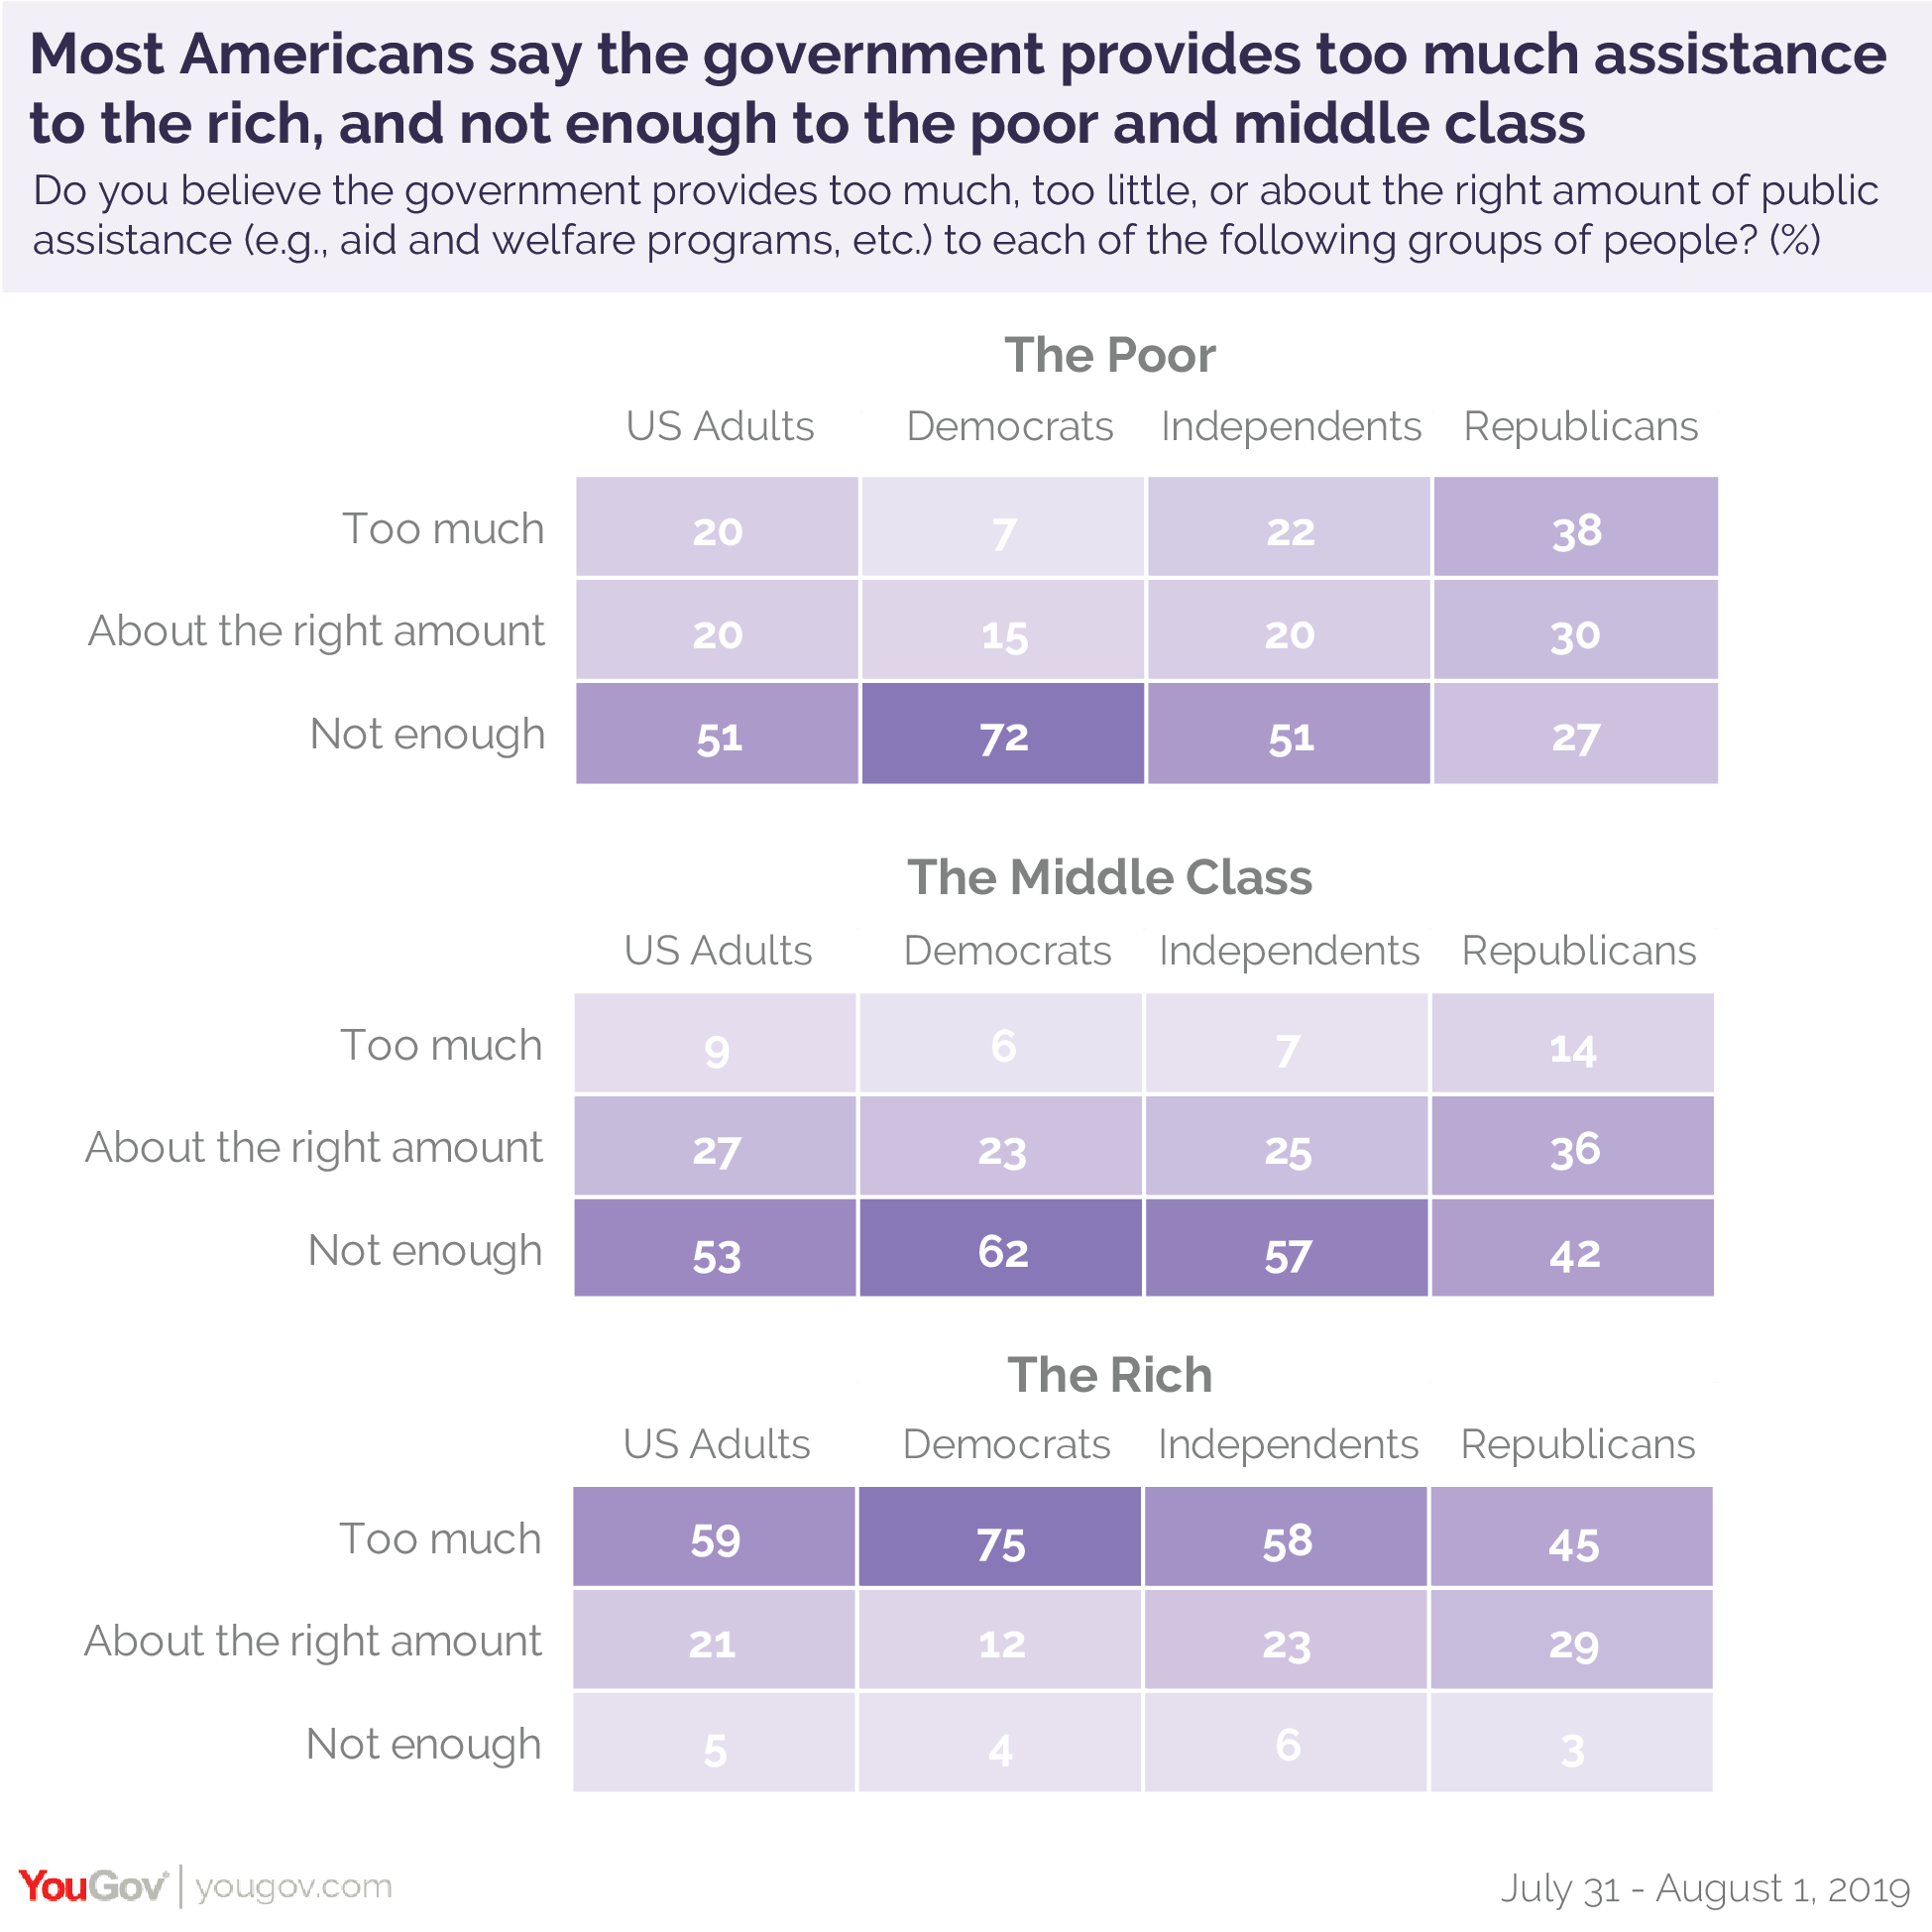 Most Americans say the government provides too much assistance to the rich, and not enough to the poor and middle class